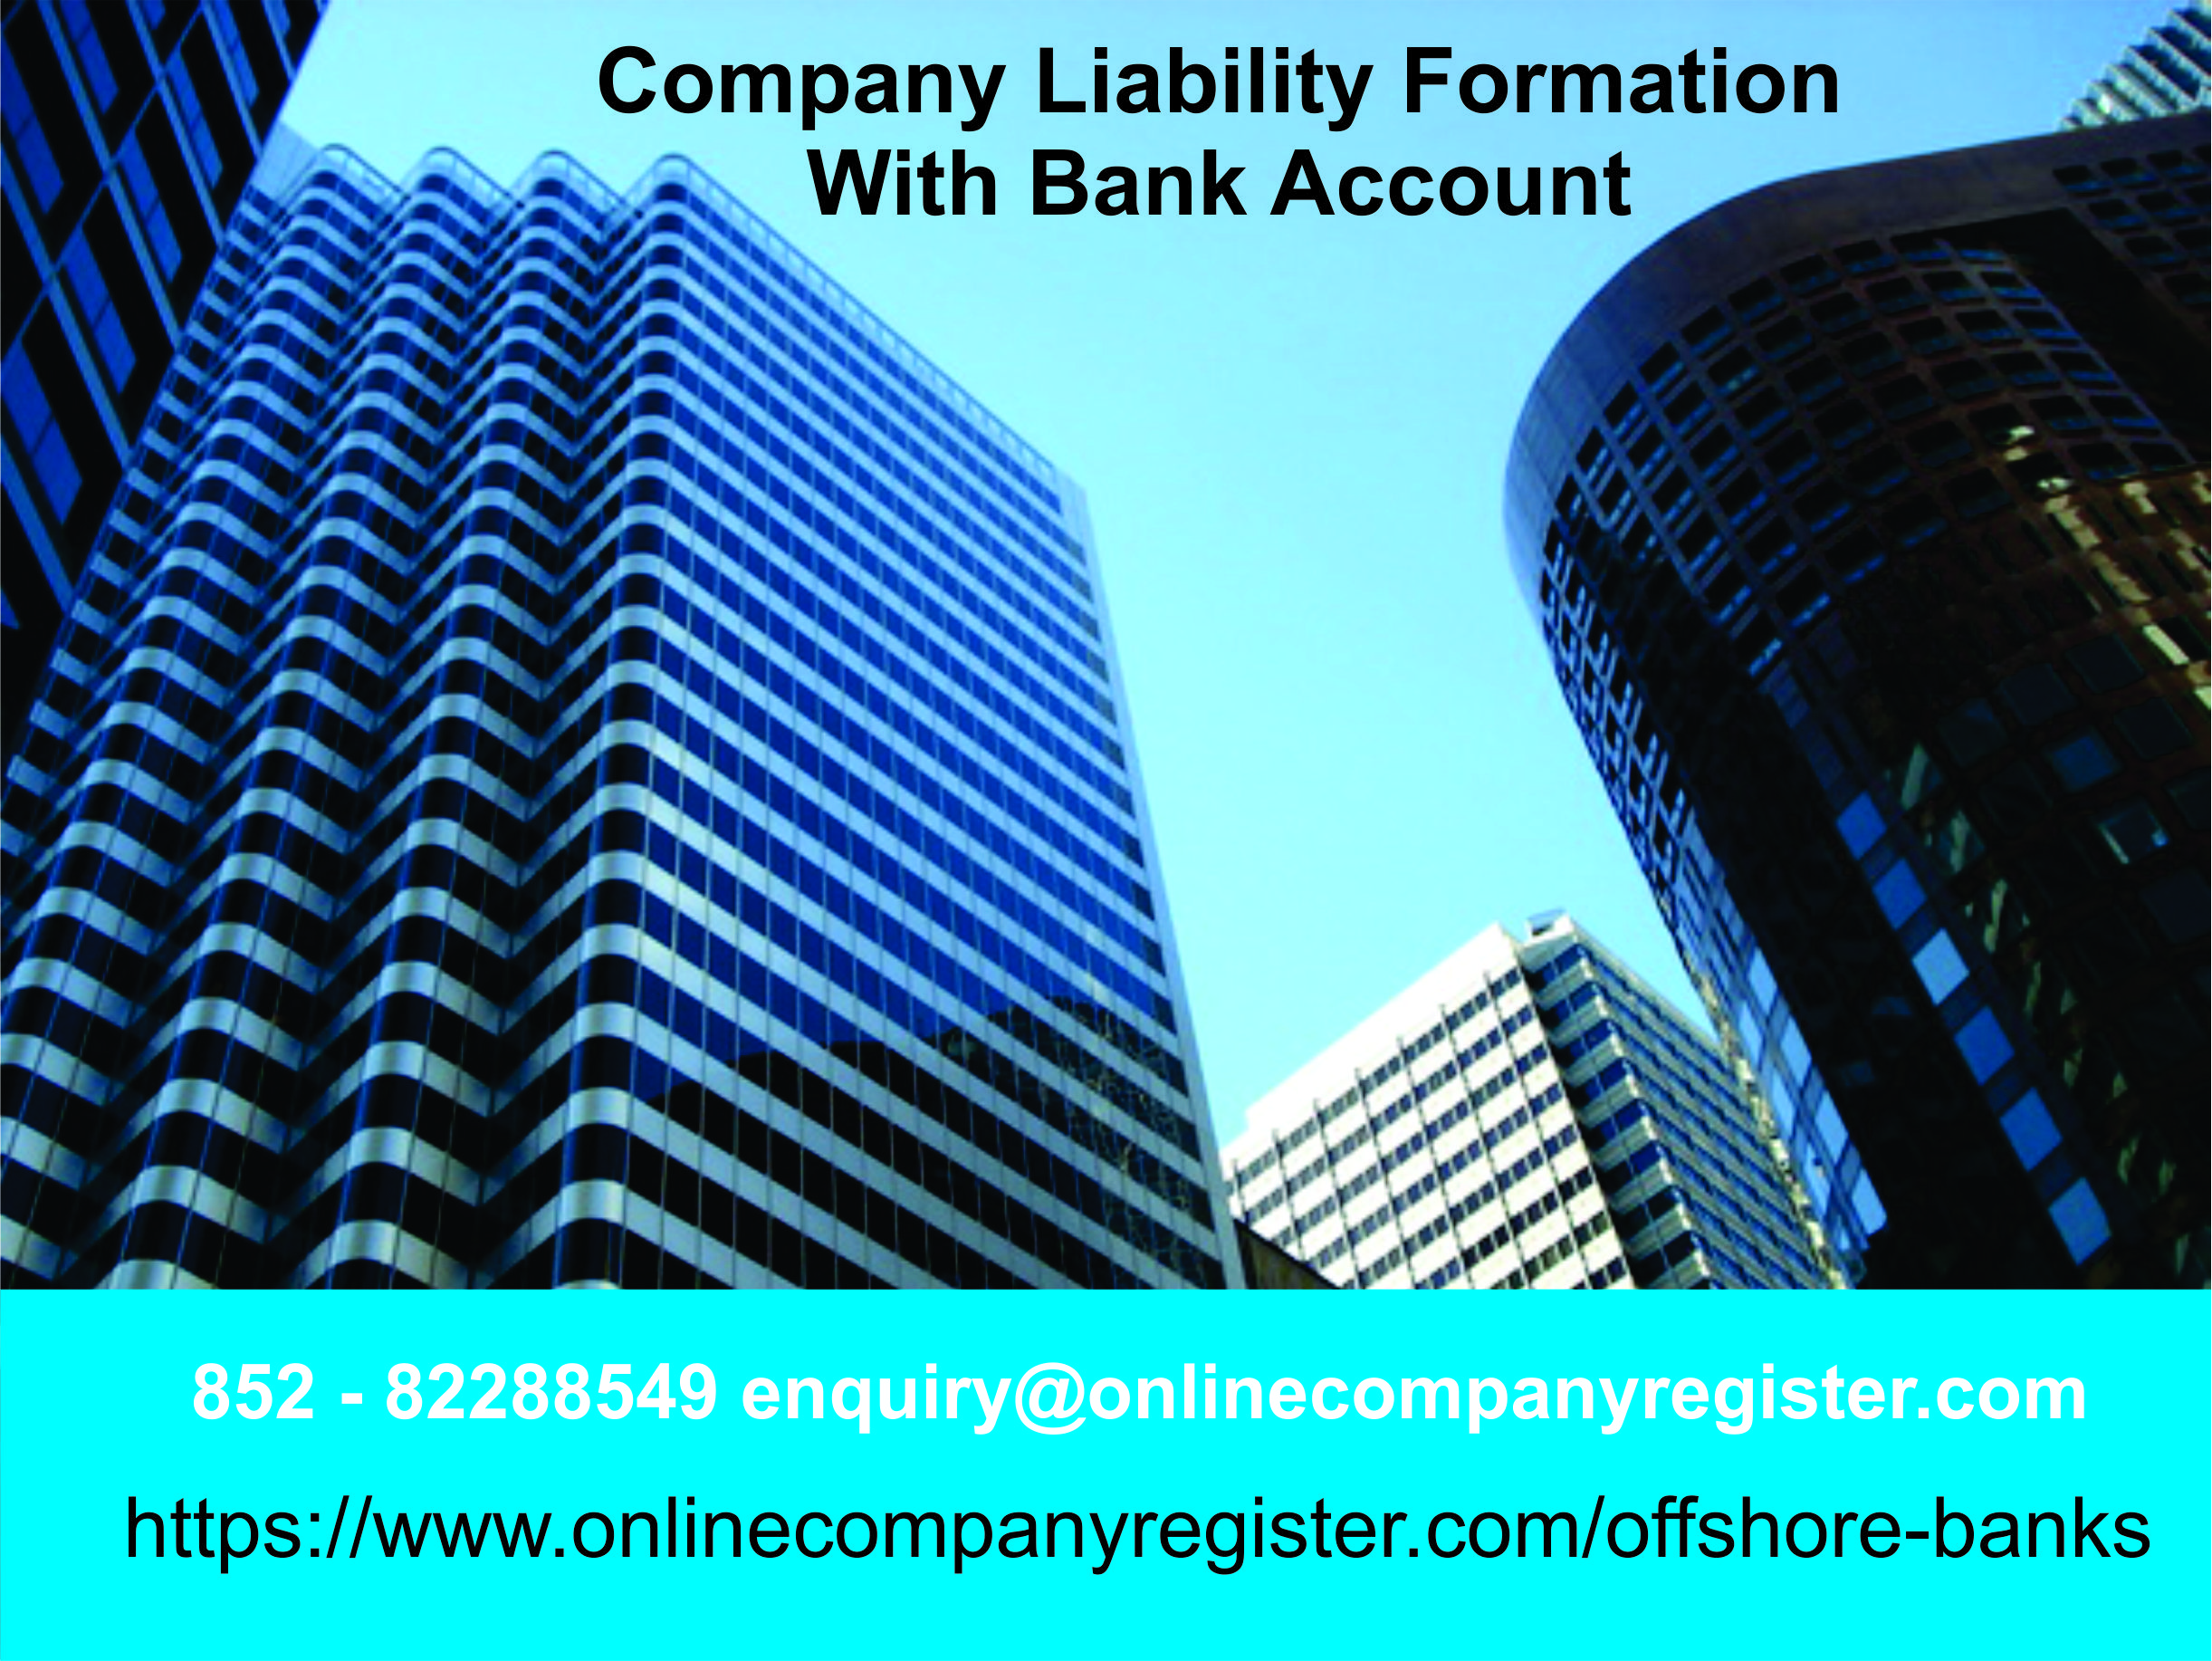 online company is leading in offshore banking, it offers to own